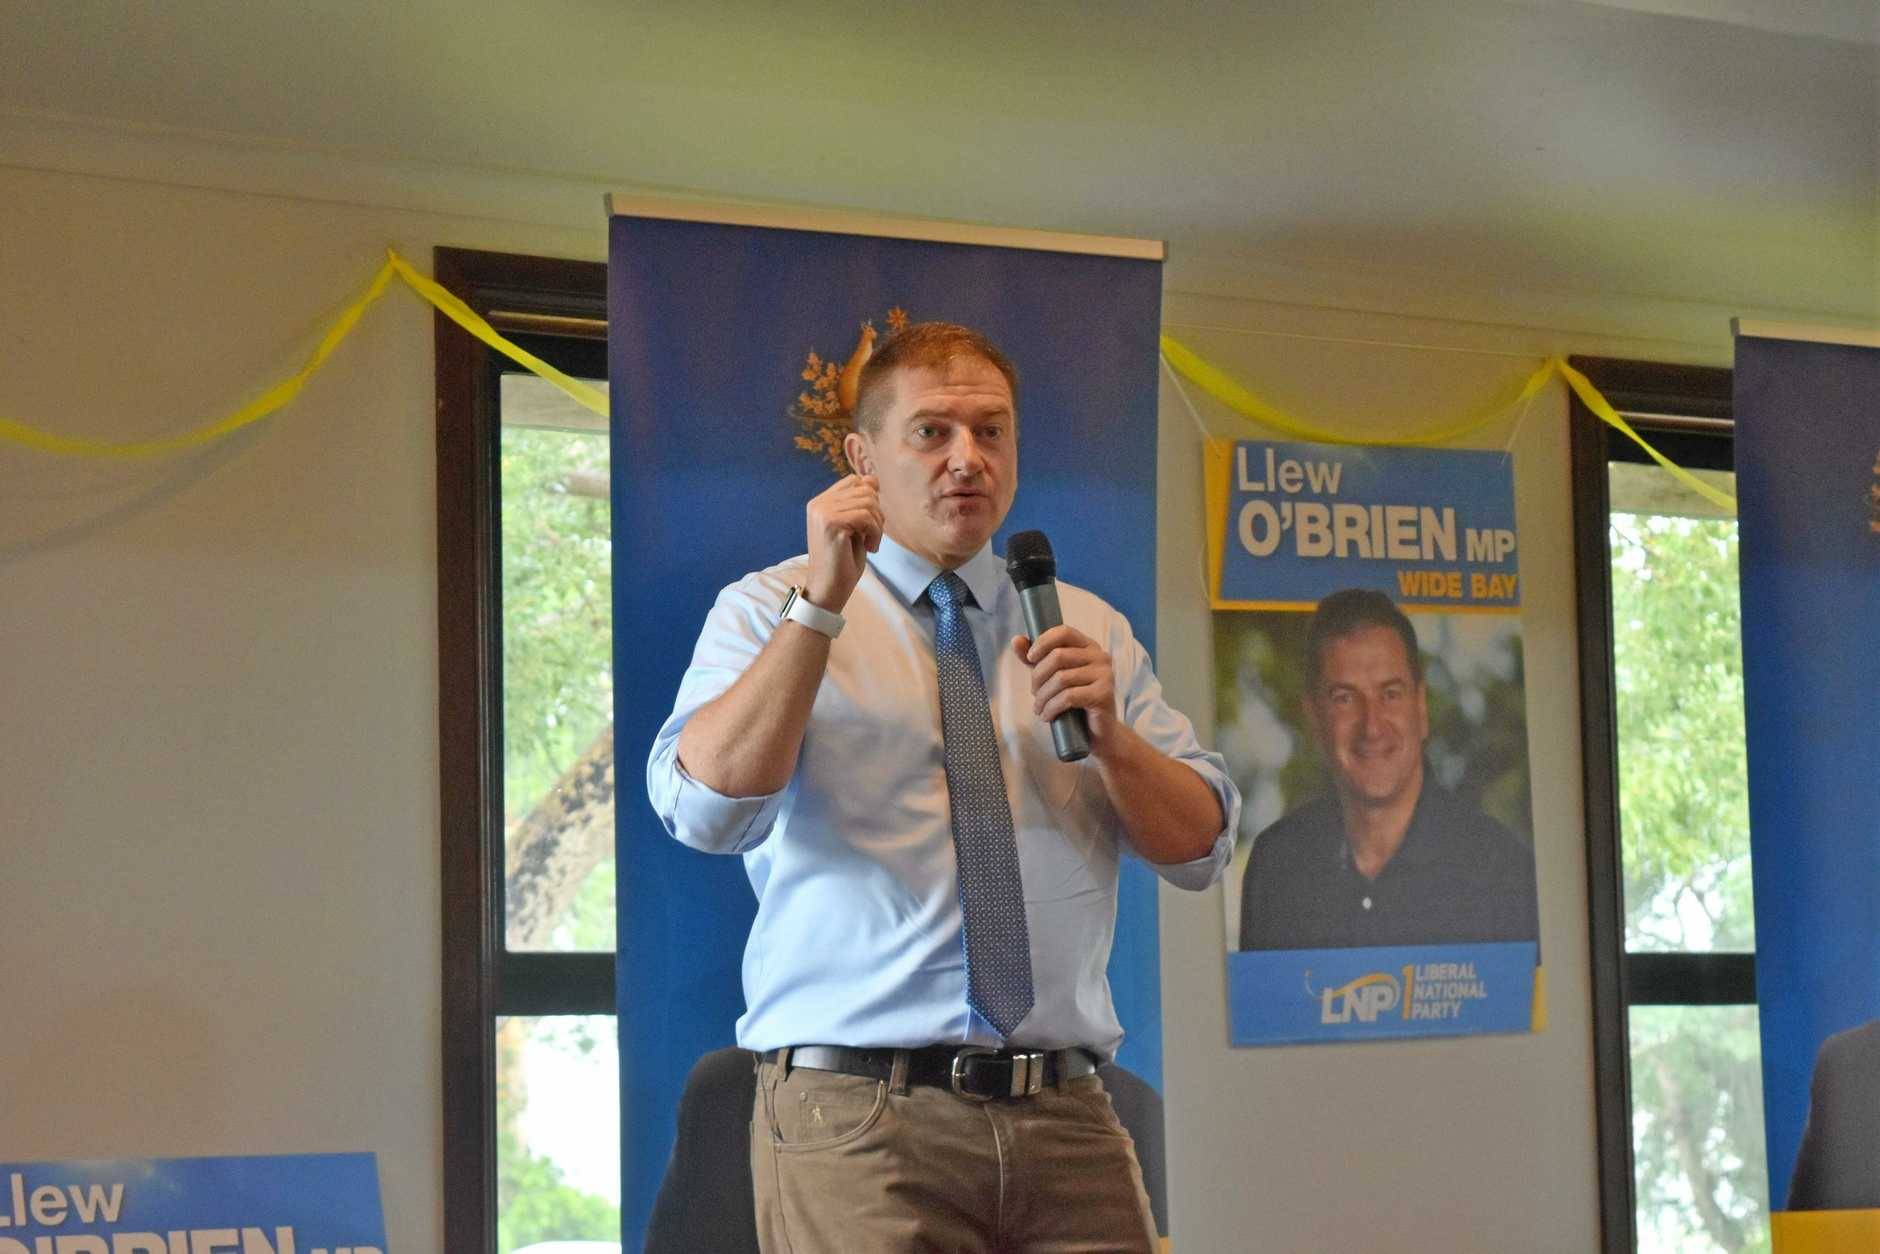 Member for Wide Bay Llew O'Brien.